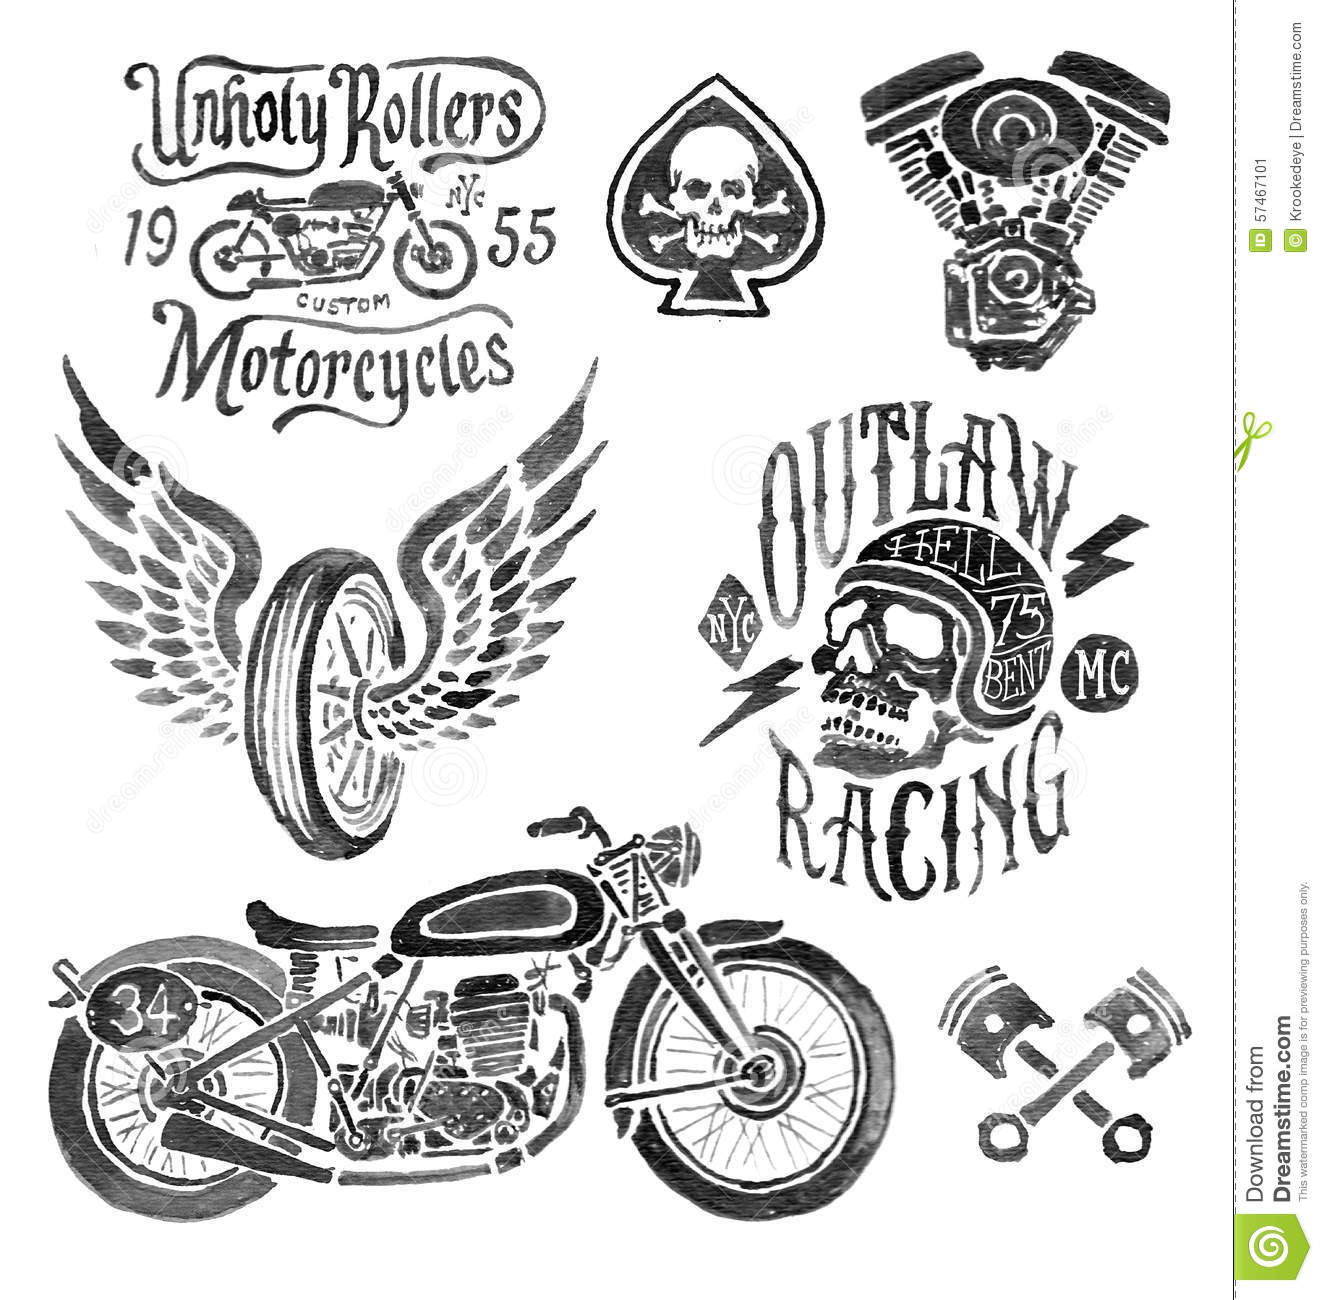 Tipos Y Caracteristicas De Las Motos further Springer Front End 6 Over Chrome Fits Harley Davidson in addition Custompage together with Fabrication Parts as well Triumph Daytona 955i Wiring Diagram Triumph Wiring 47ecaea7e30d2c82. on custom motorcycle seats